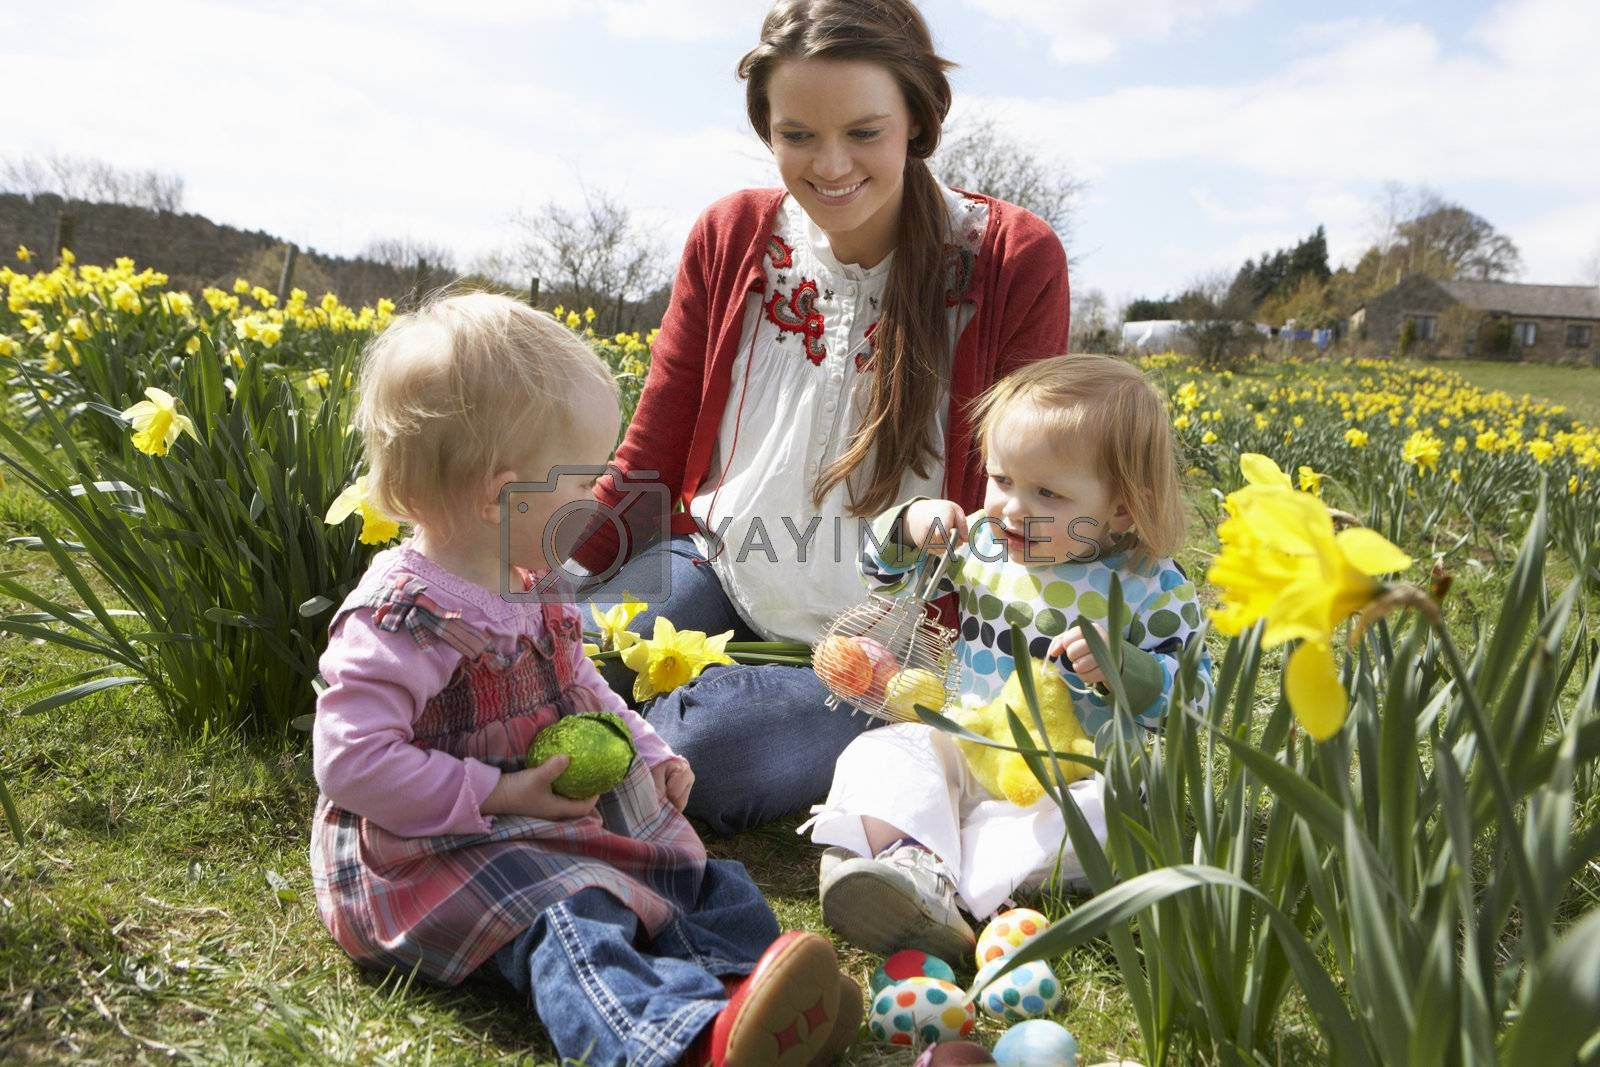 Mother And Daughter In Daffodil Field With Decorated Easter Eggs by OMG Images